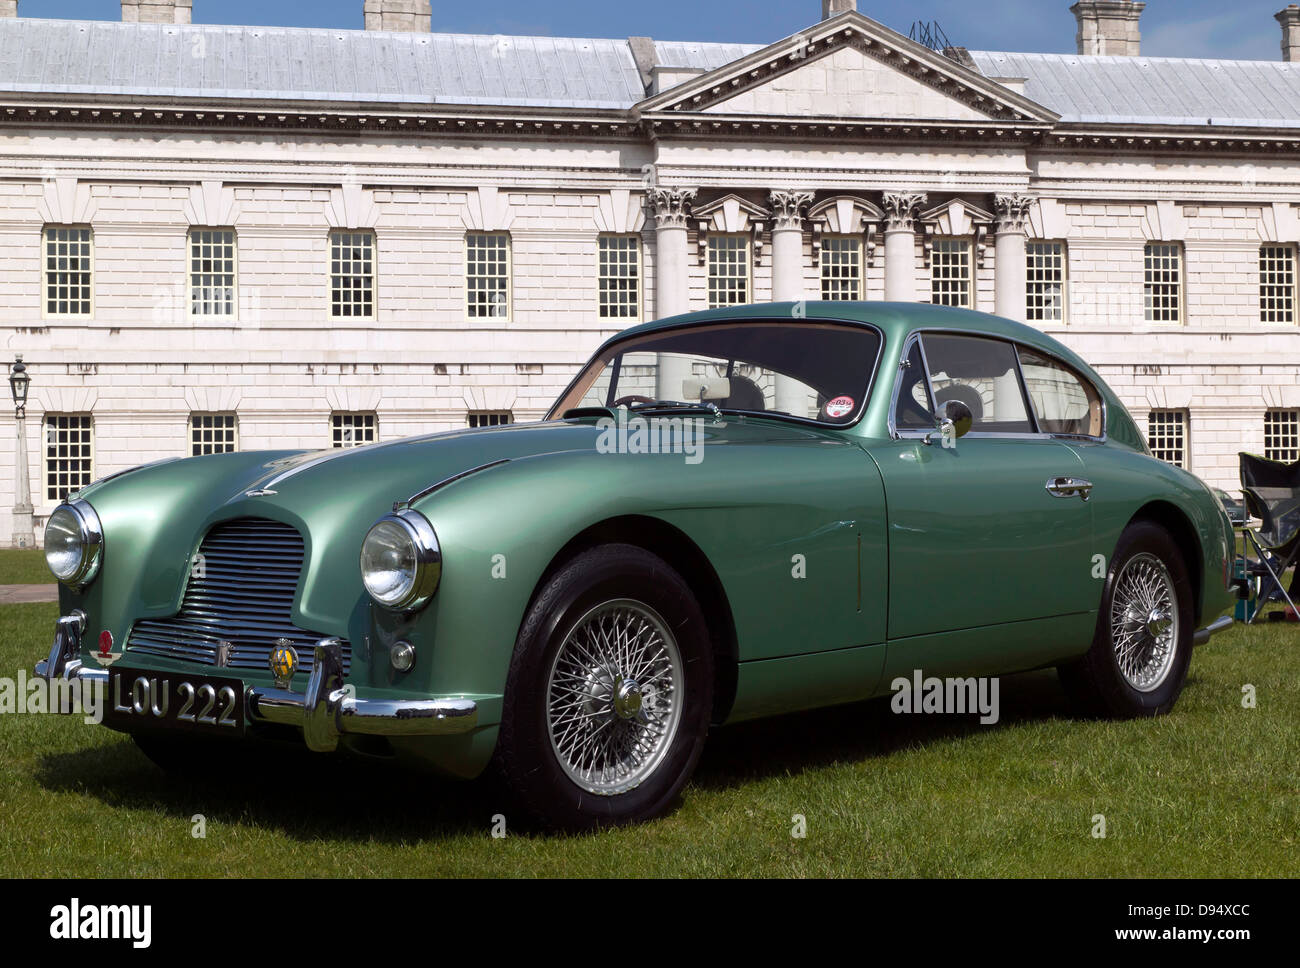 Vintage Aston High Resolution Stock Photography And Images Alamy